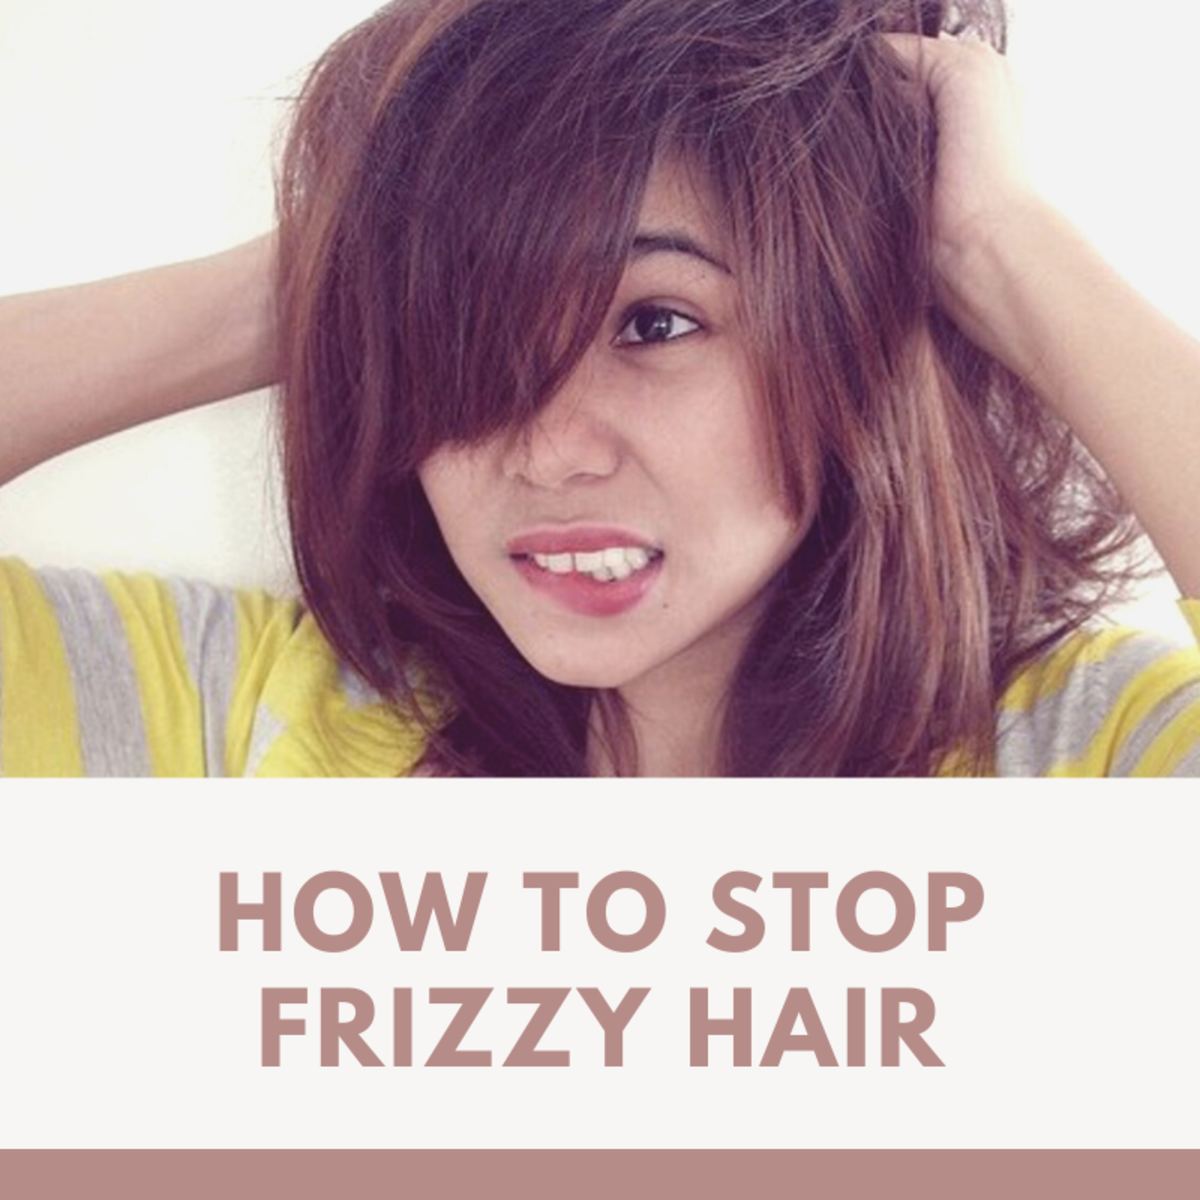 Managing your frizzy hair can be challenging. Read on to learn some important tips and tricks.